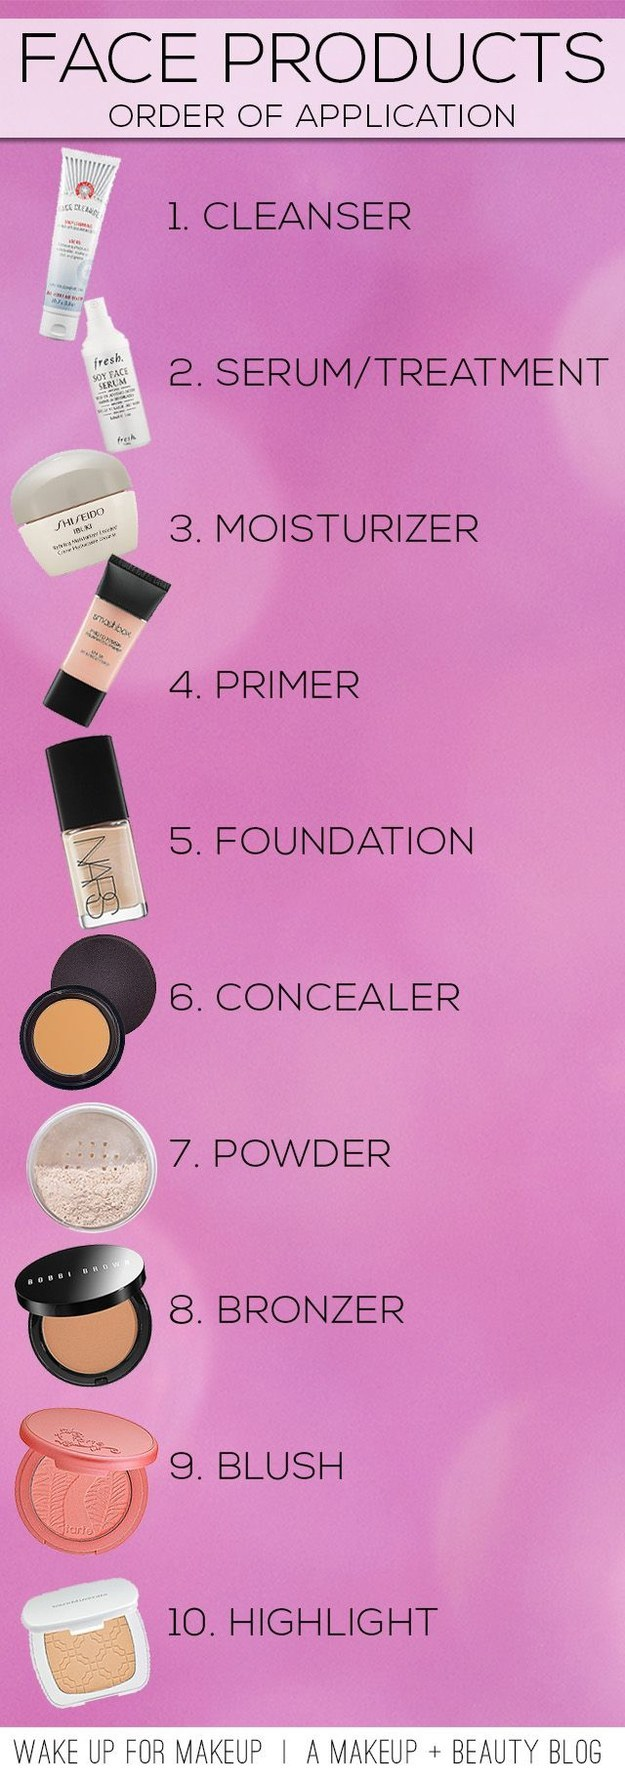 Proper Order to Apply Face Products